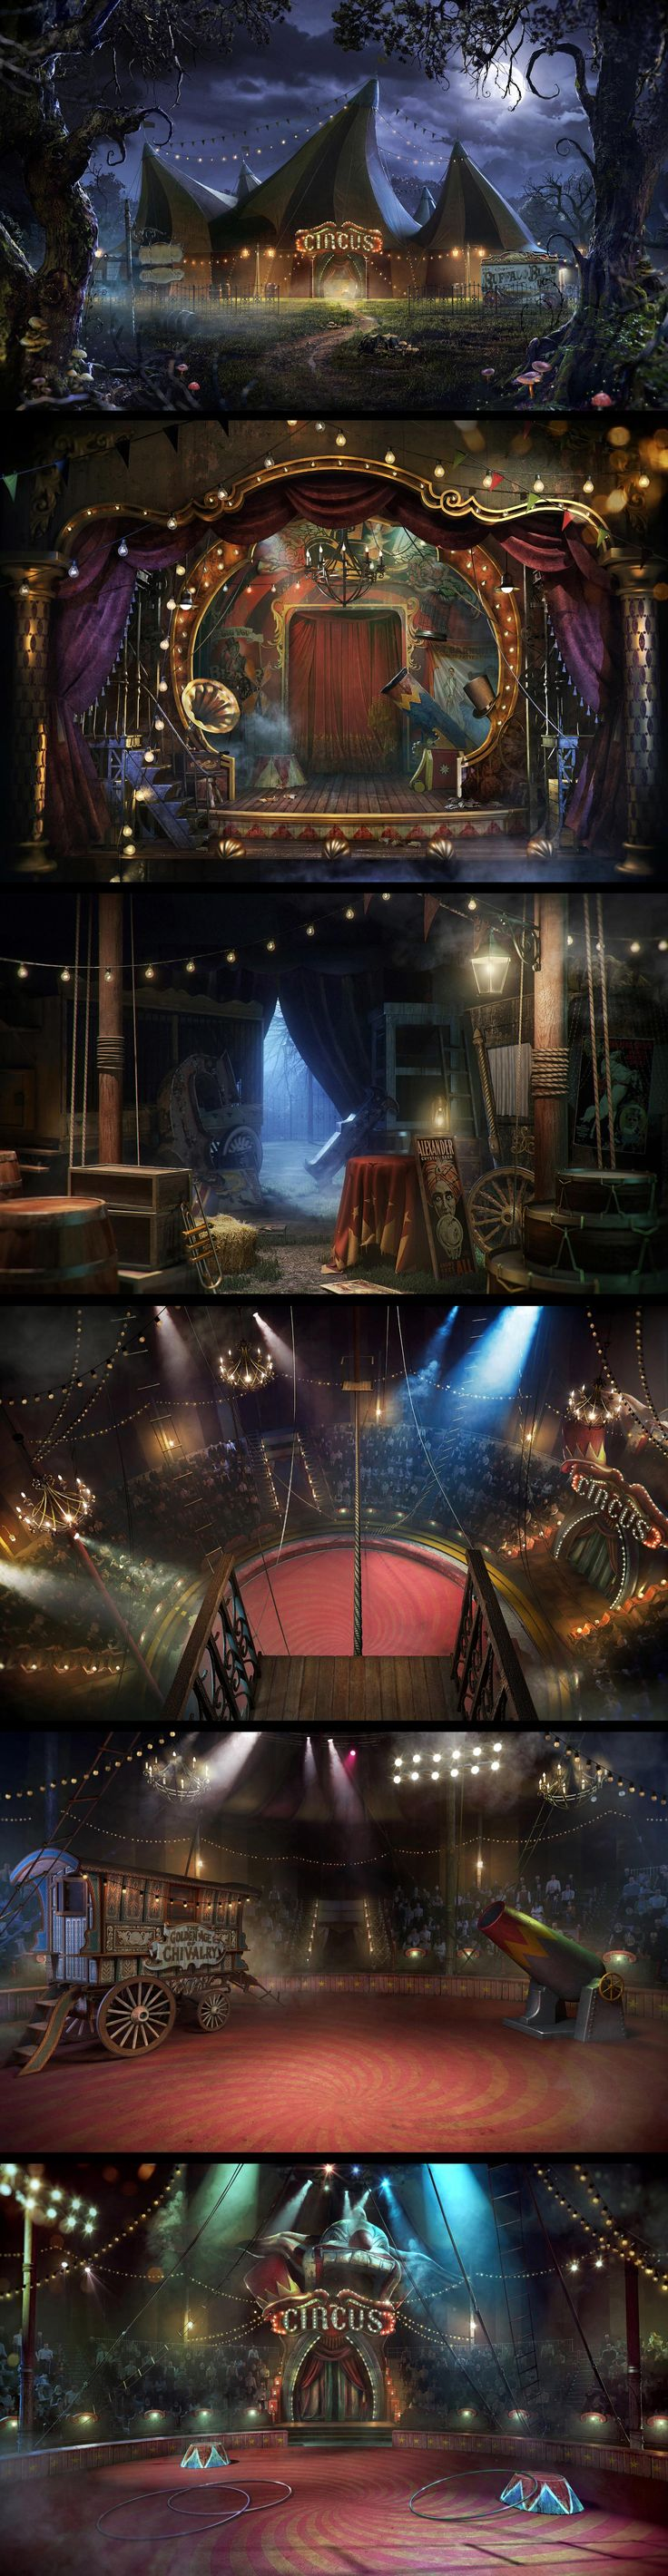 "Circus by MatteDesign студия дизайна ""llustrations for the project The Circus (Company ""MegaFon"")"" (a Russia online game?) http://zarkana.megafon.ru/cirque/ Great example of the look and feel we would like to achieve. Note the slightly surreal elements like the off kilter peaks of the big top. and the jewel tone color pallette. - J"